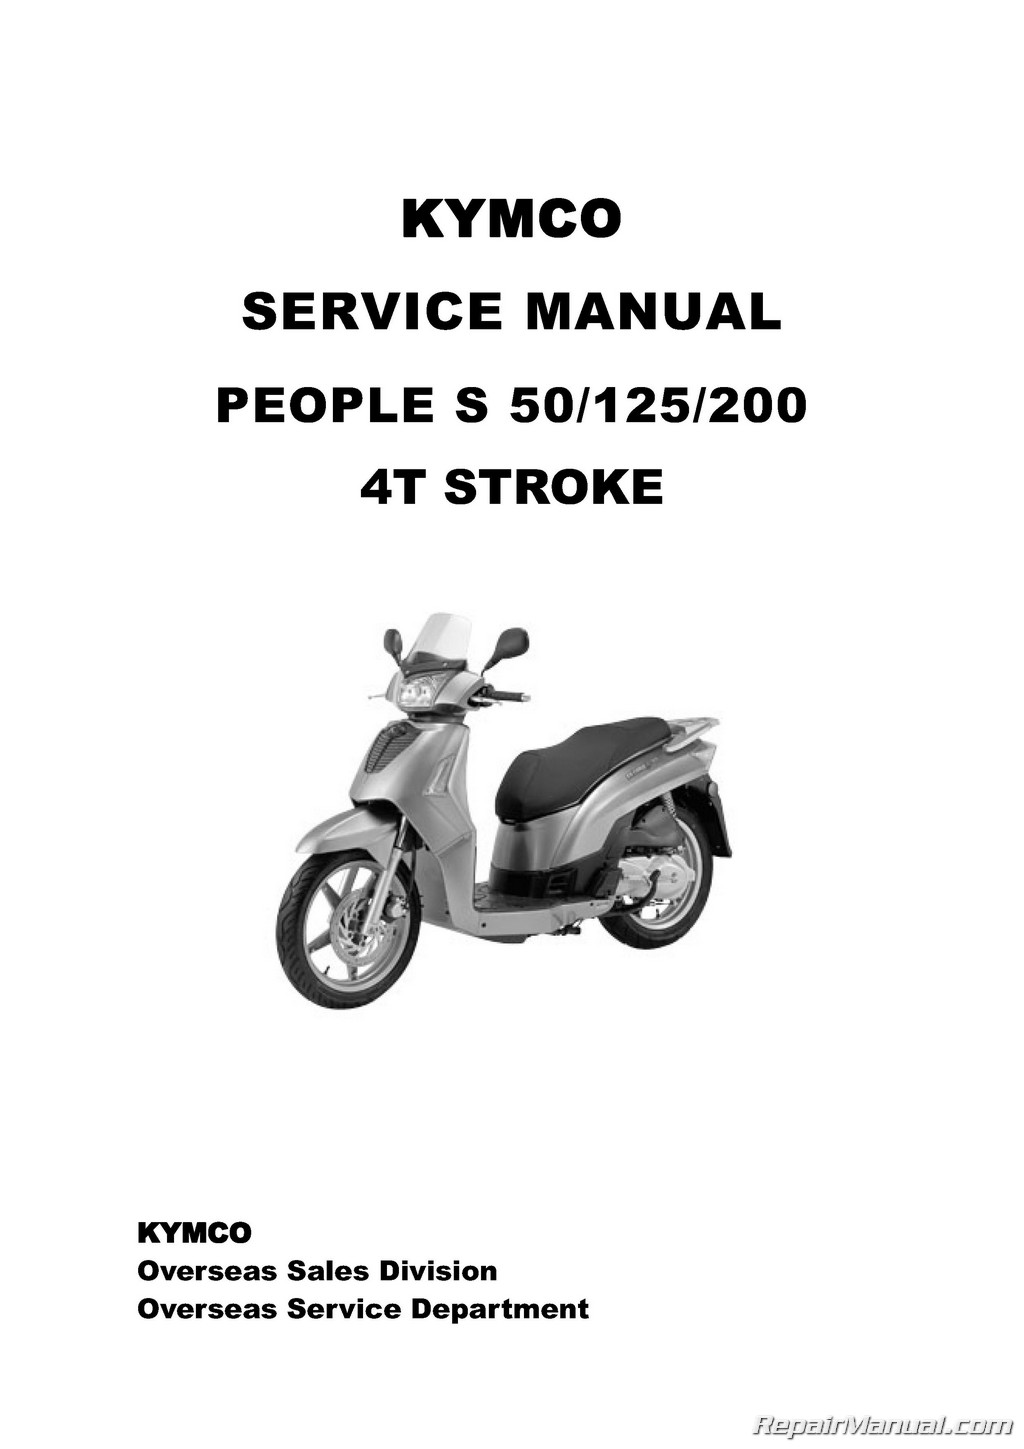 kymco people s scooter service manual printed by cyclepedia. Black Bedroom Furniture Sets. Home Design Ideas